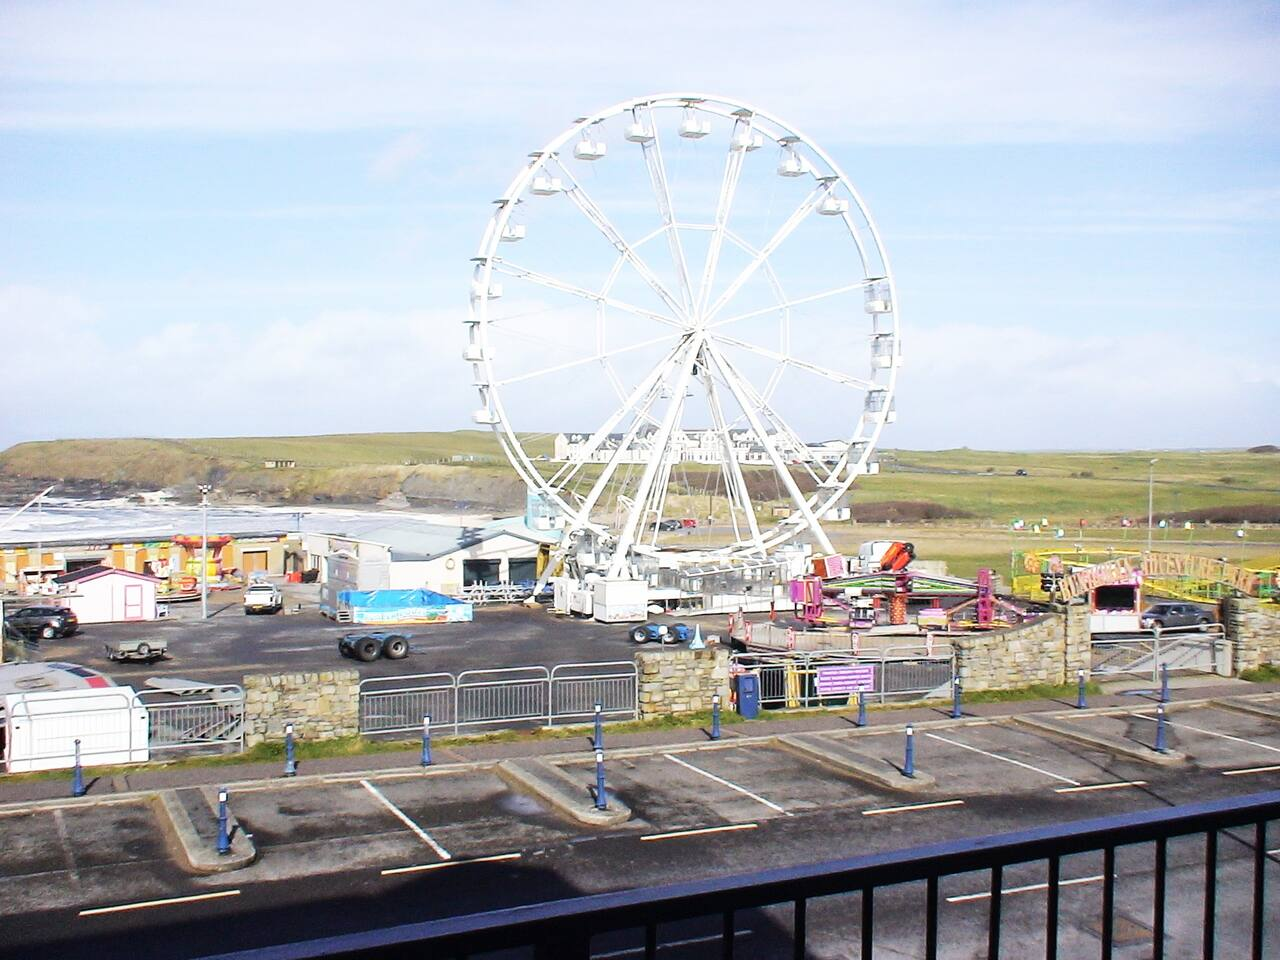 View from balcony Bundroan Beach's Peak and Outdoor amusements and fair ground